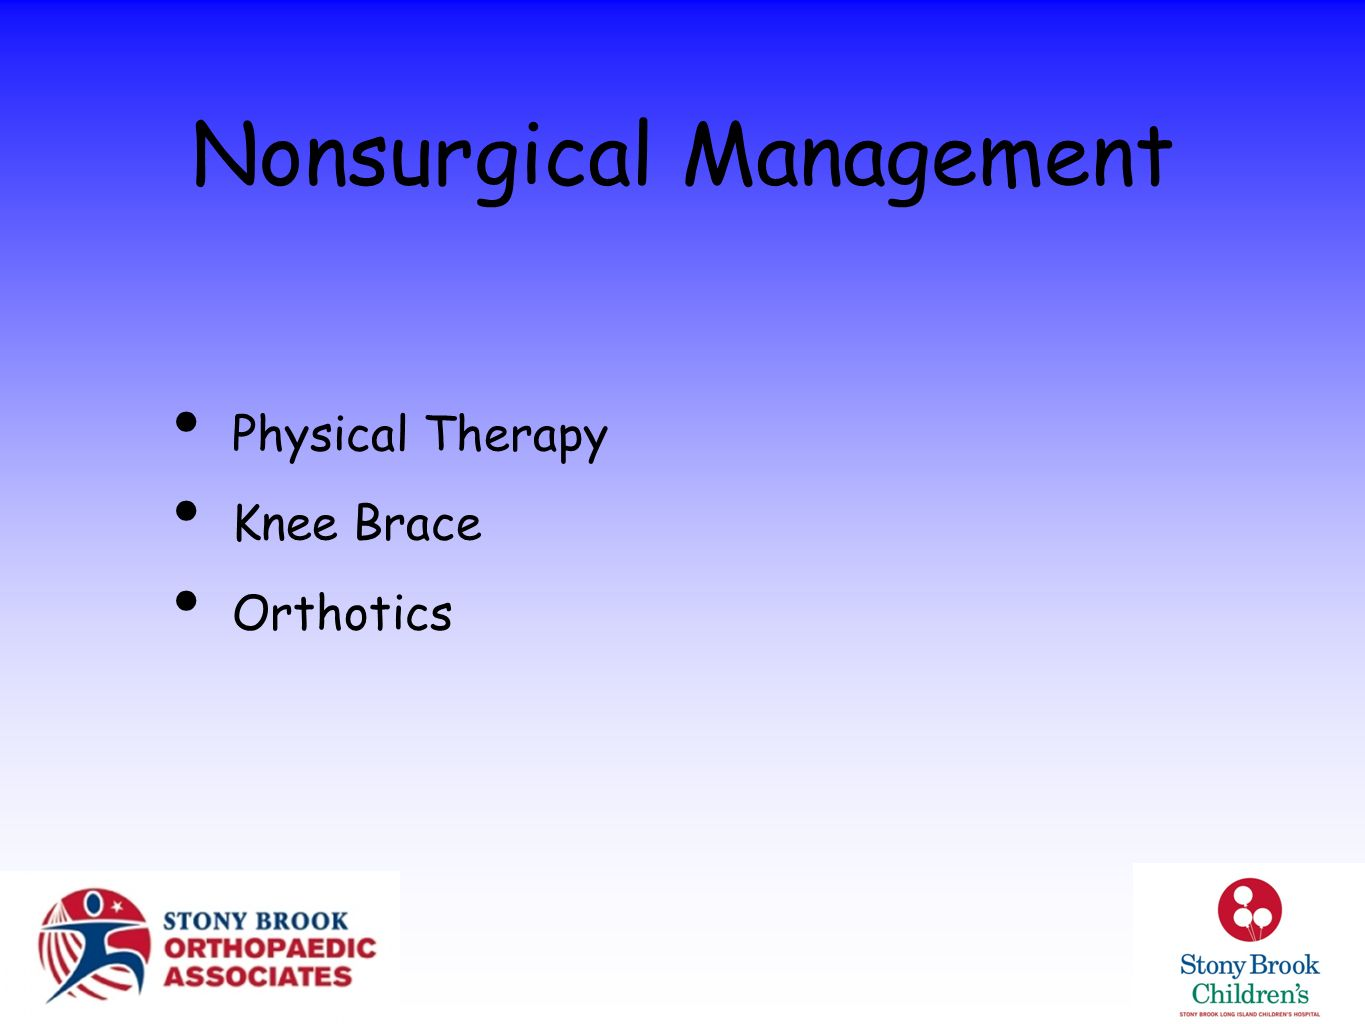 Nonsurgical Management Physical Therapy Knee Brace Orthotics